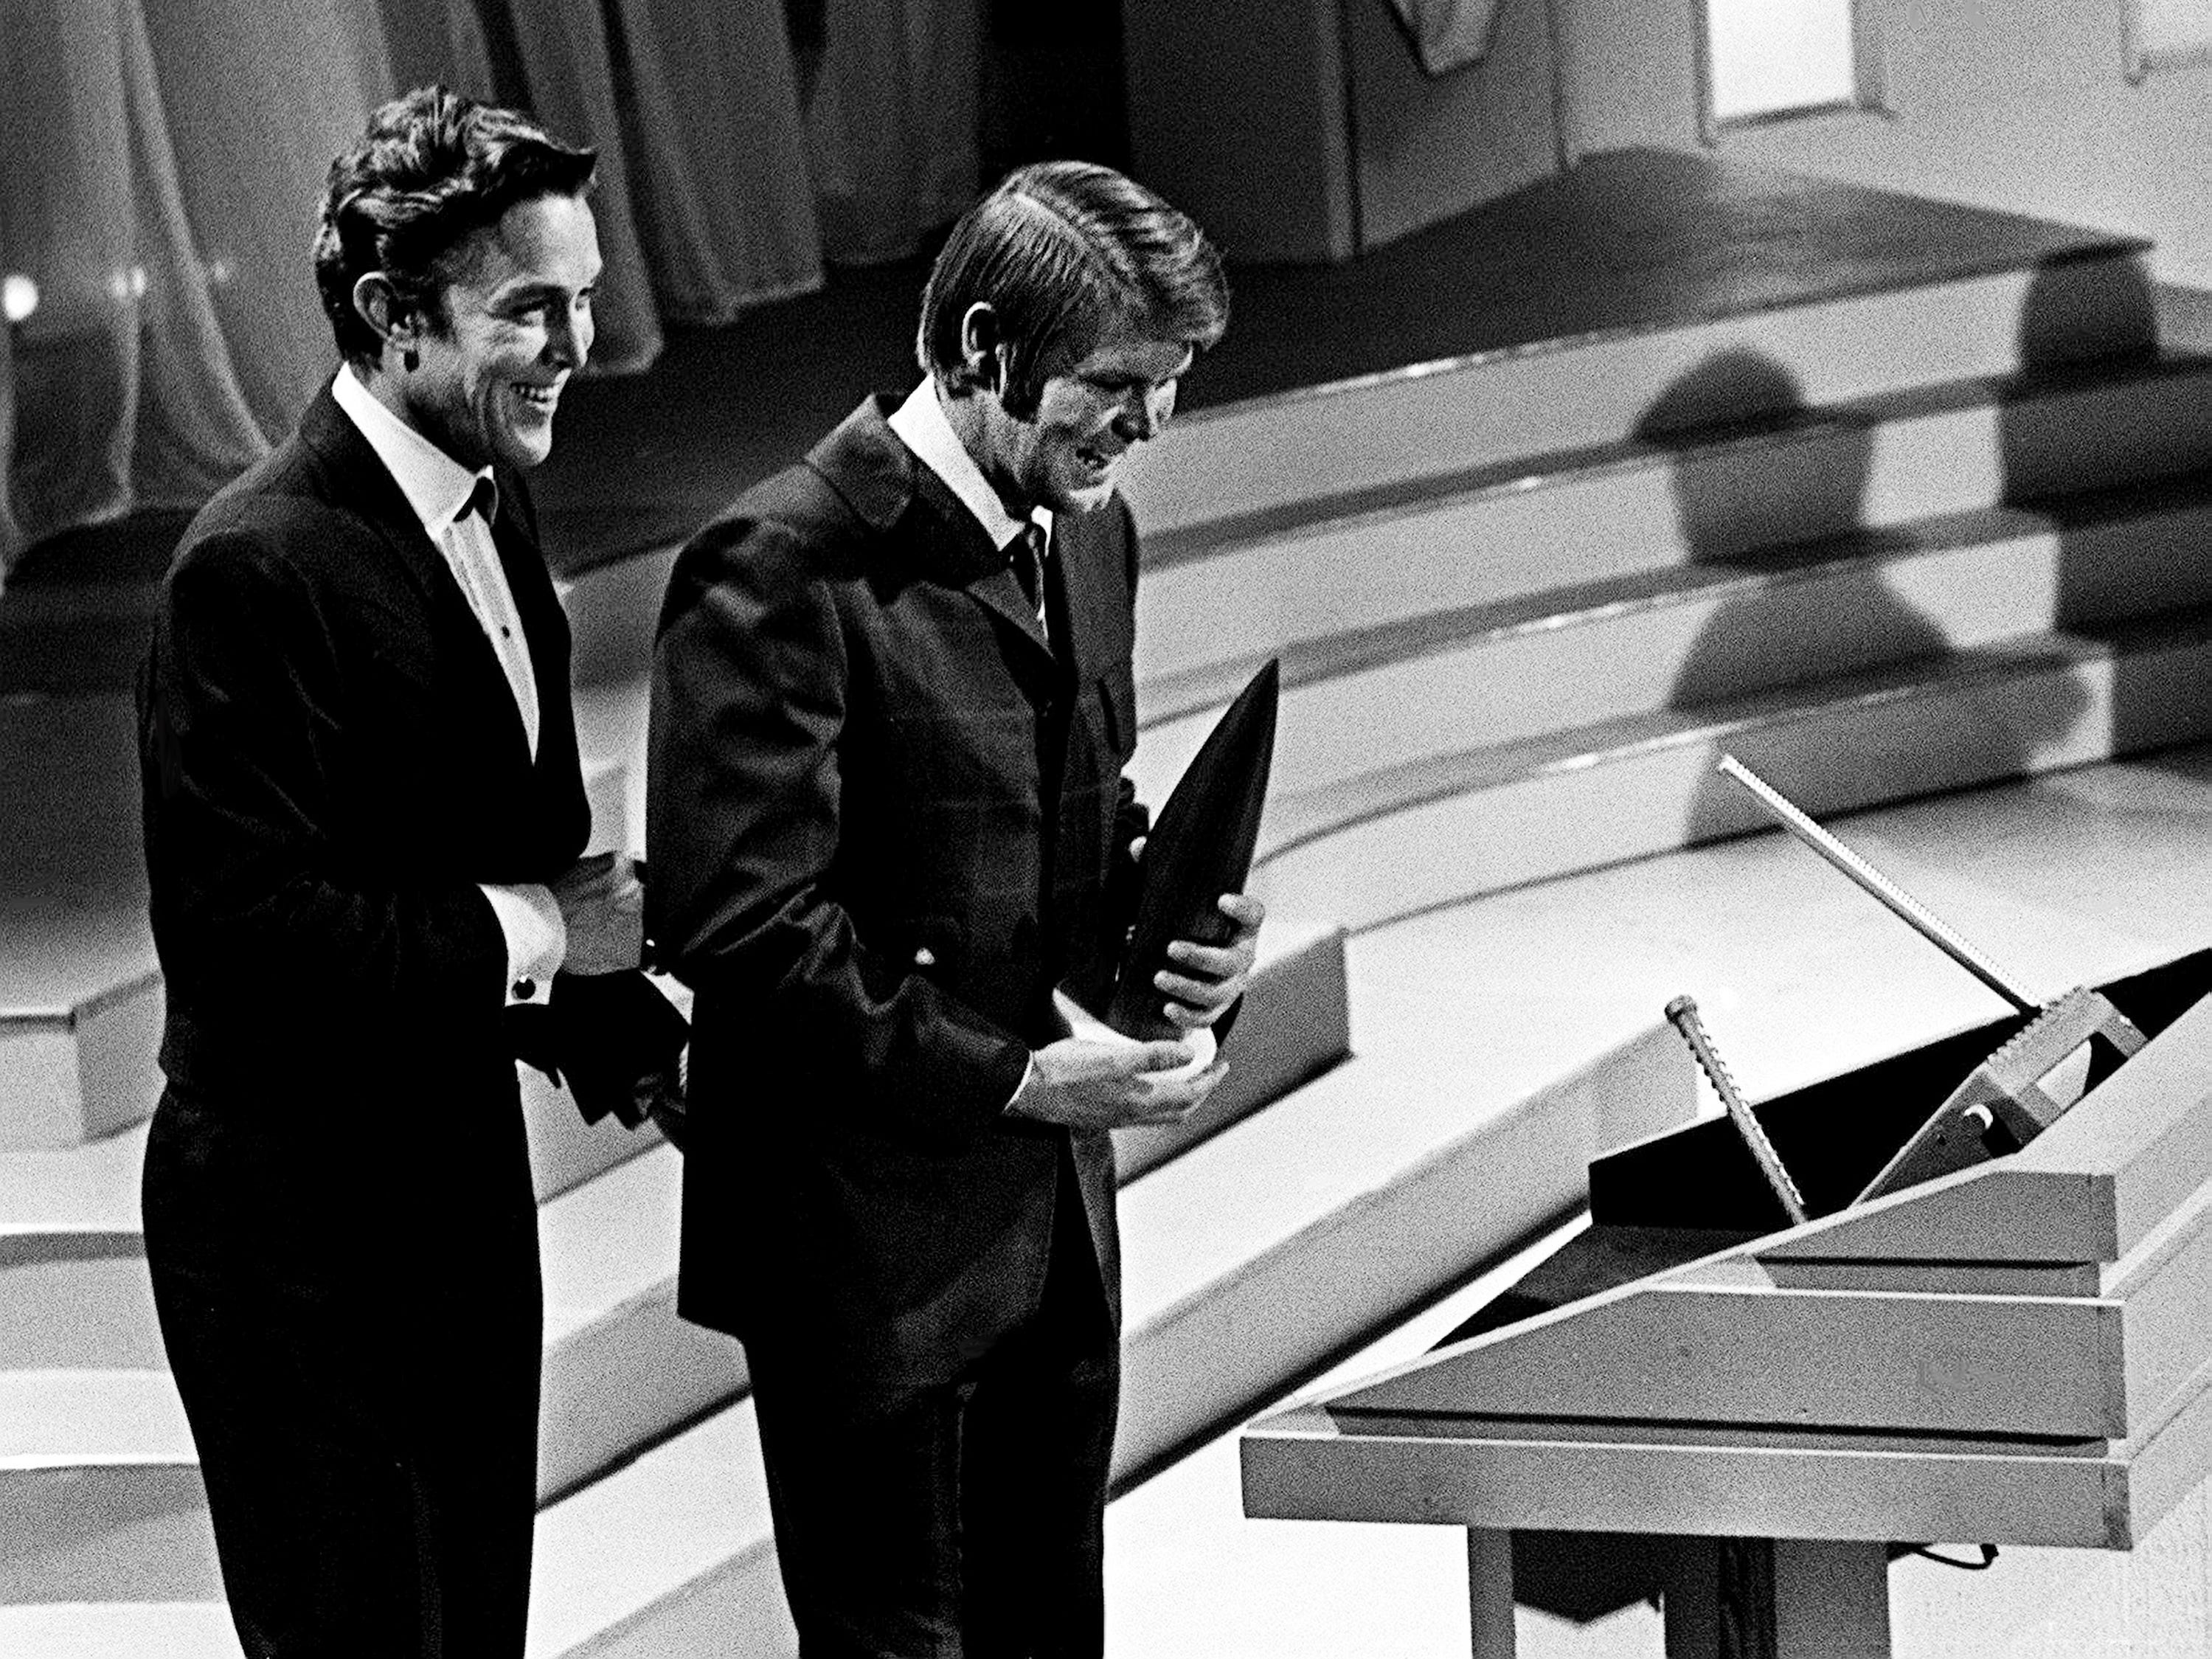 Glen Campbell, right, accepts his Entertainer of the Year award from presenter Jimmy Dean during the second annual CMA Awards show at the Ryman Auditorium on Oct. 18, 1968. Campbell also won the Male Vocalist of the Year award.